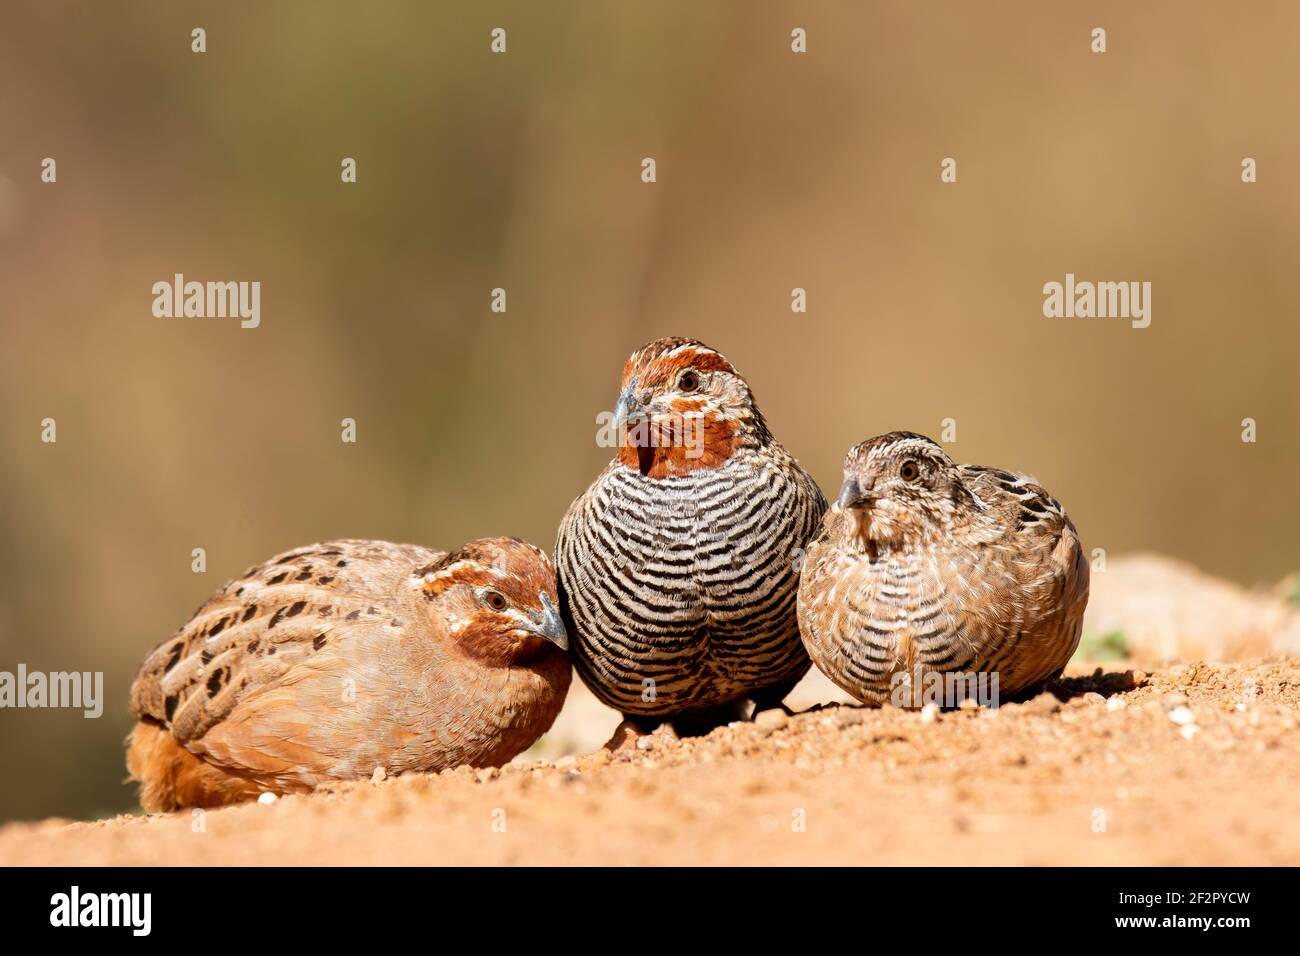 A family of jungle quails eating grains on the ground inside bushy jungles on the outskirts of Bangalore Stock Photo